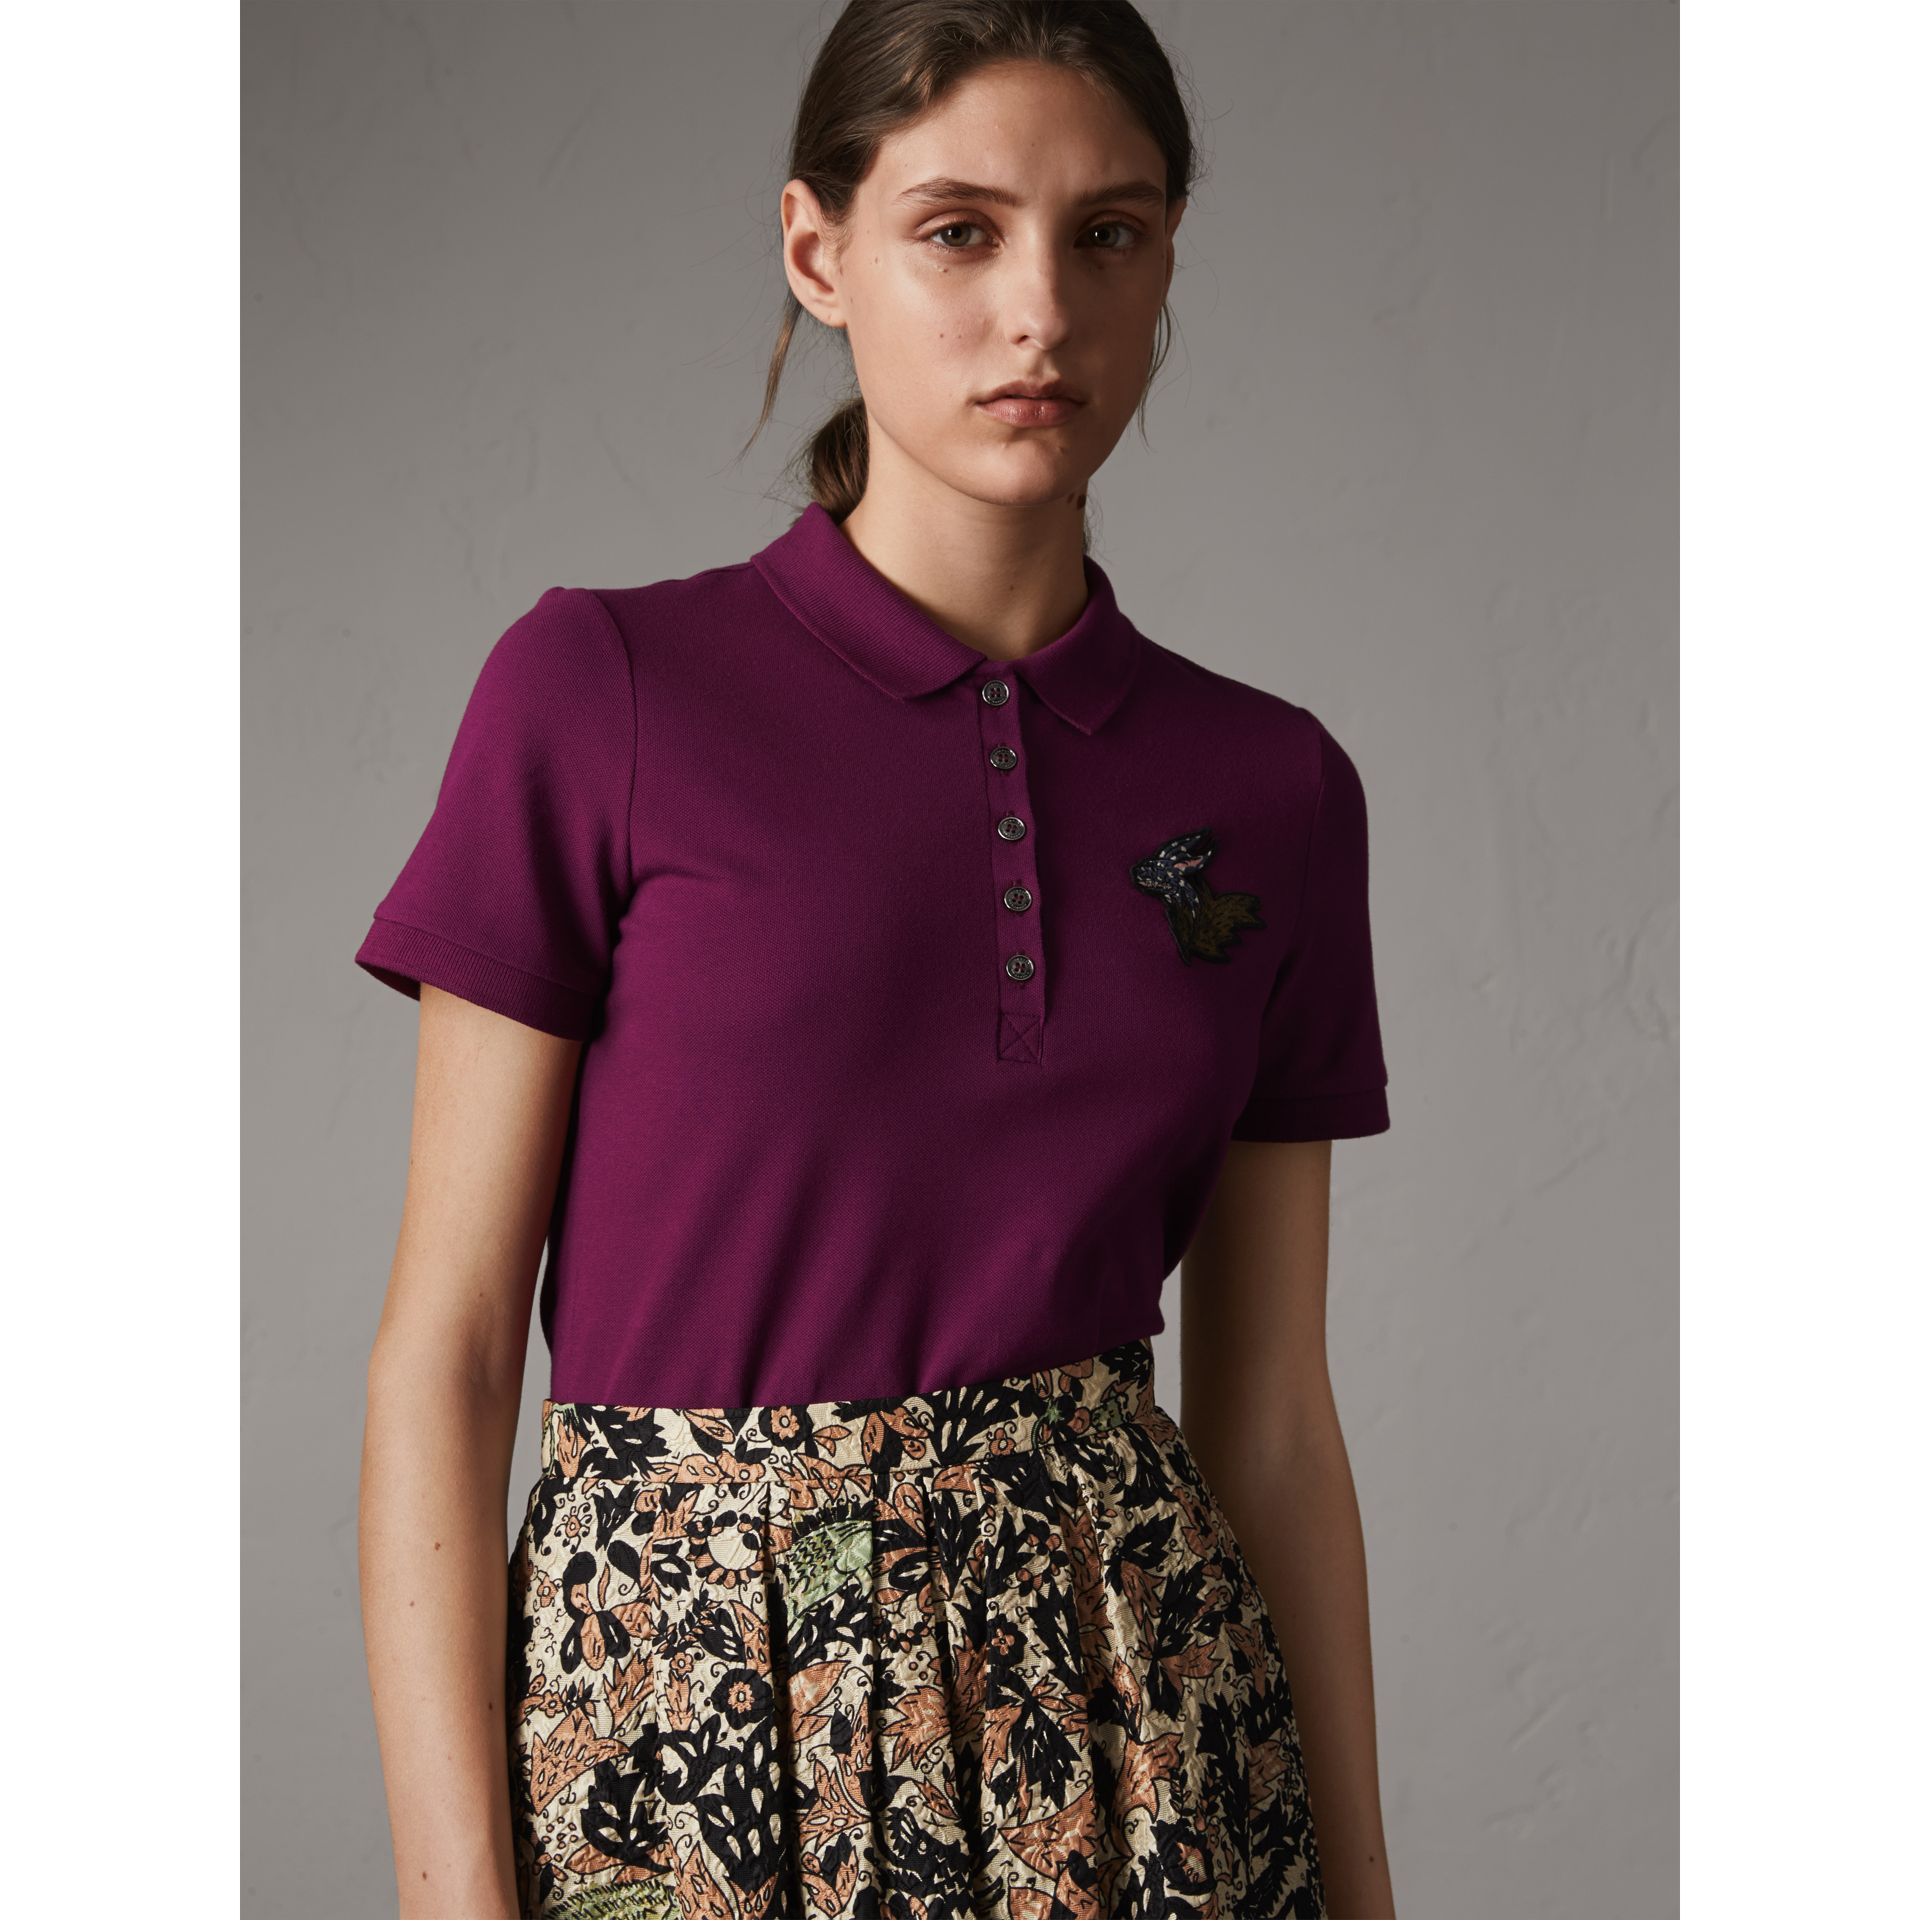 Beasts Motif Stretch Cotton Piqué Polo Shirt in Magenta Pink - Women | Burberry Singapore - gallery image 1